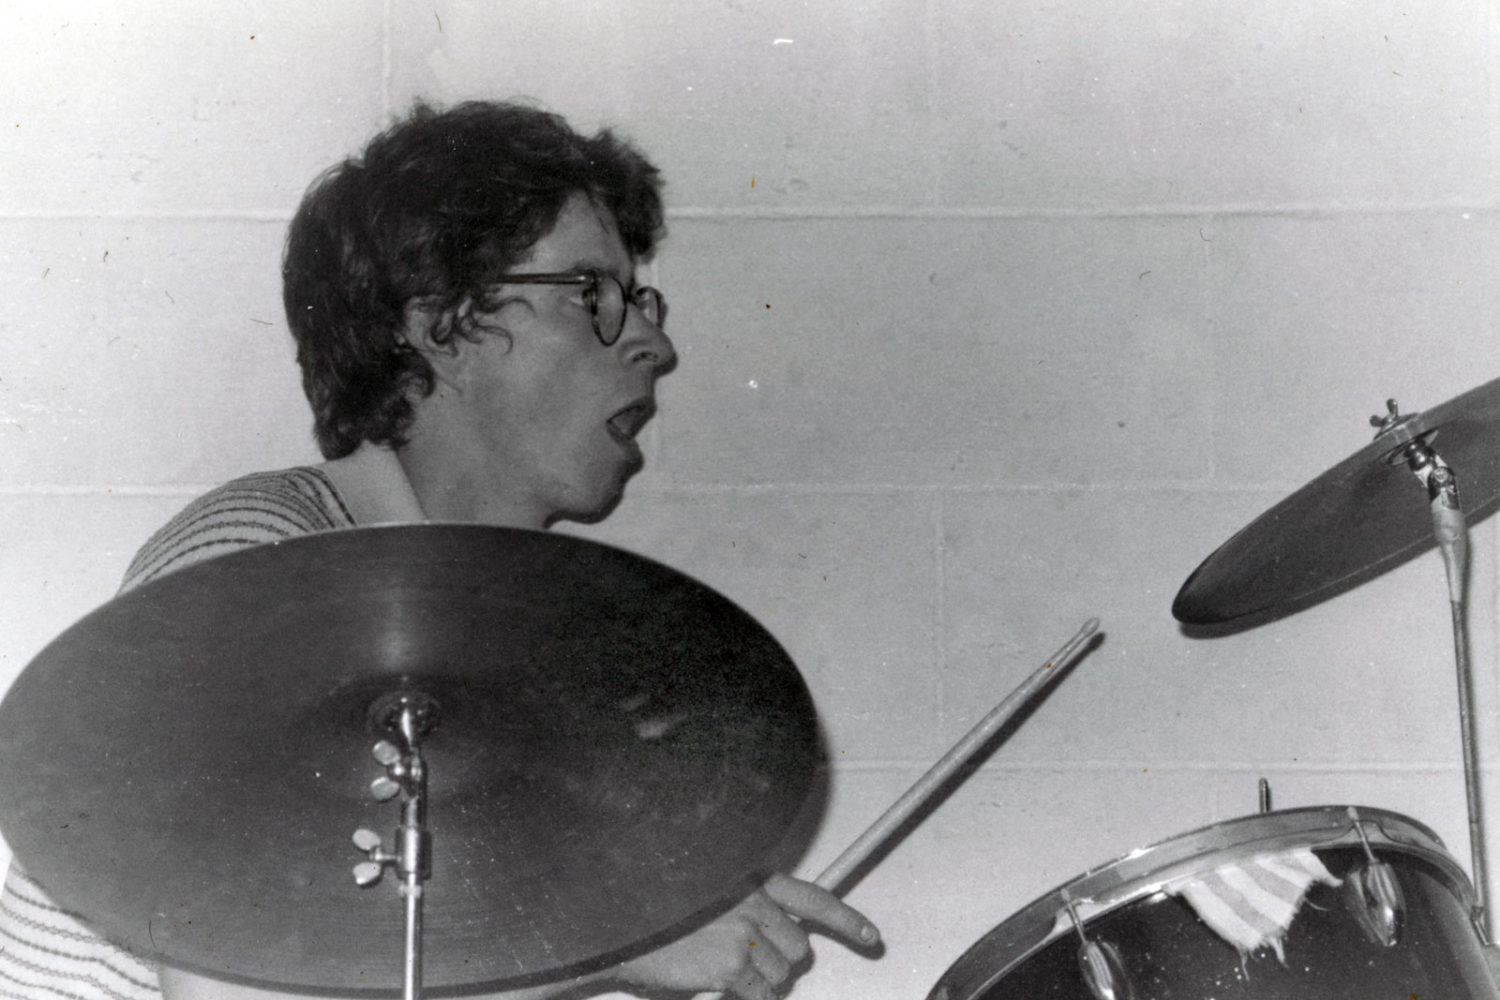 Paul playing drums with the On Fours